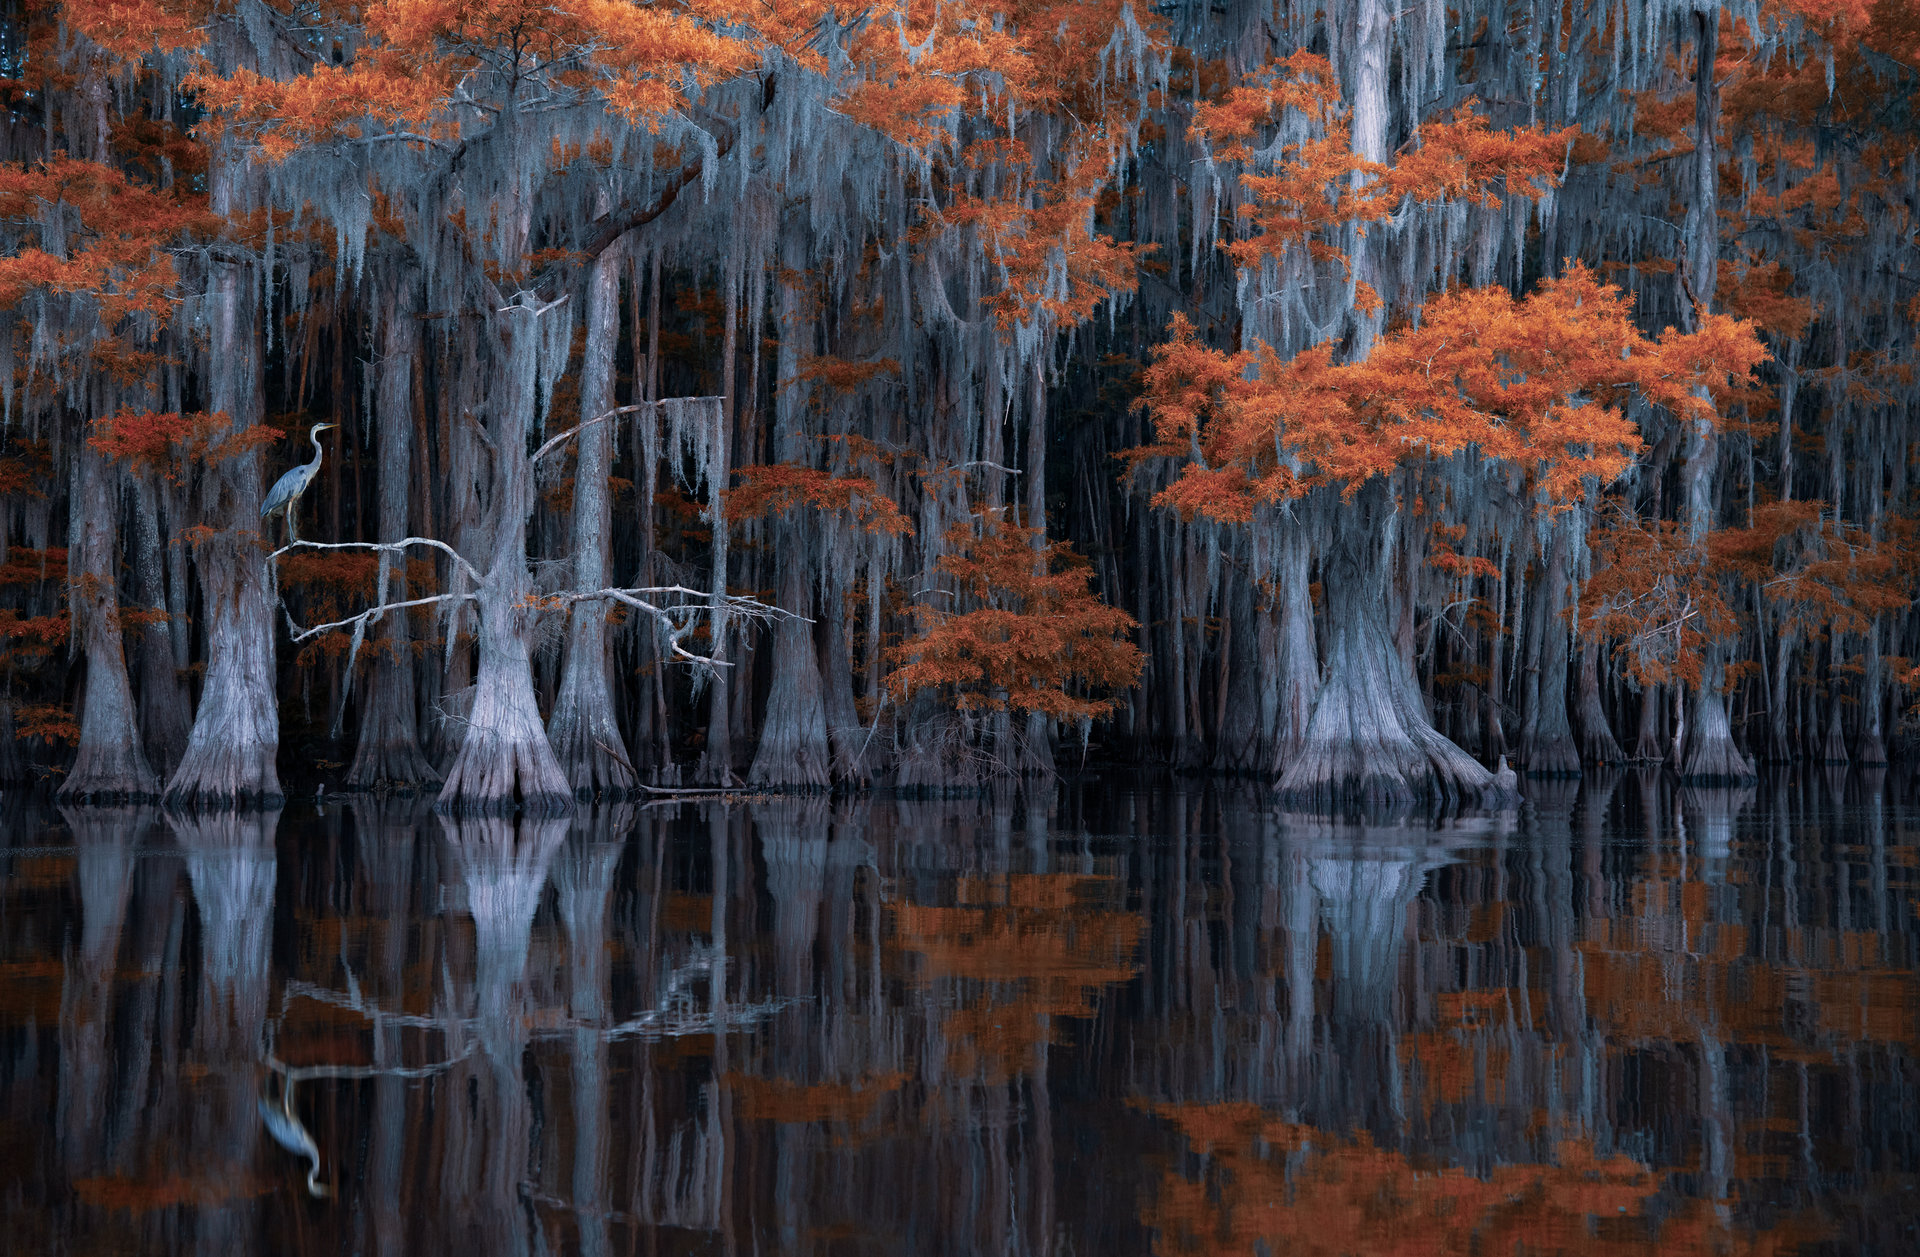 Mystery of the Swamp | Author Zhoro  - HITTHEROAD | PHOTO FORUM